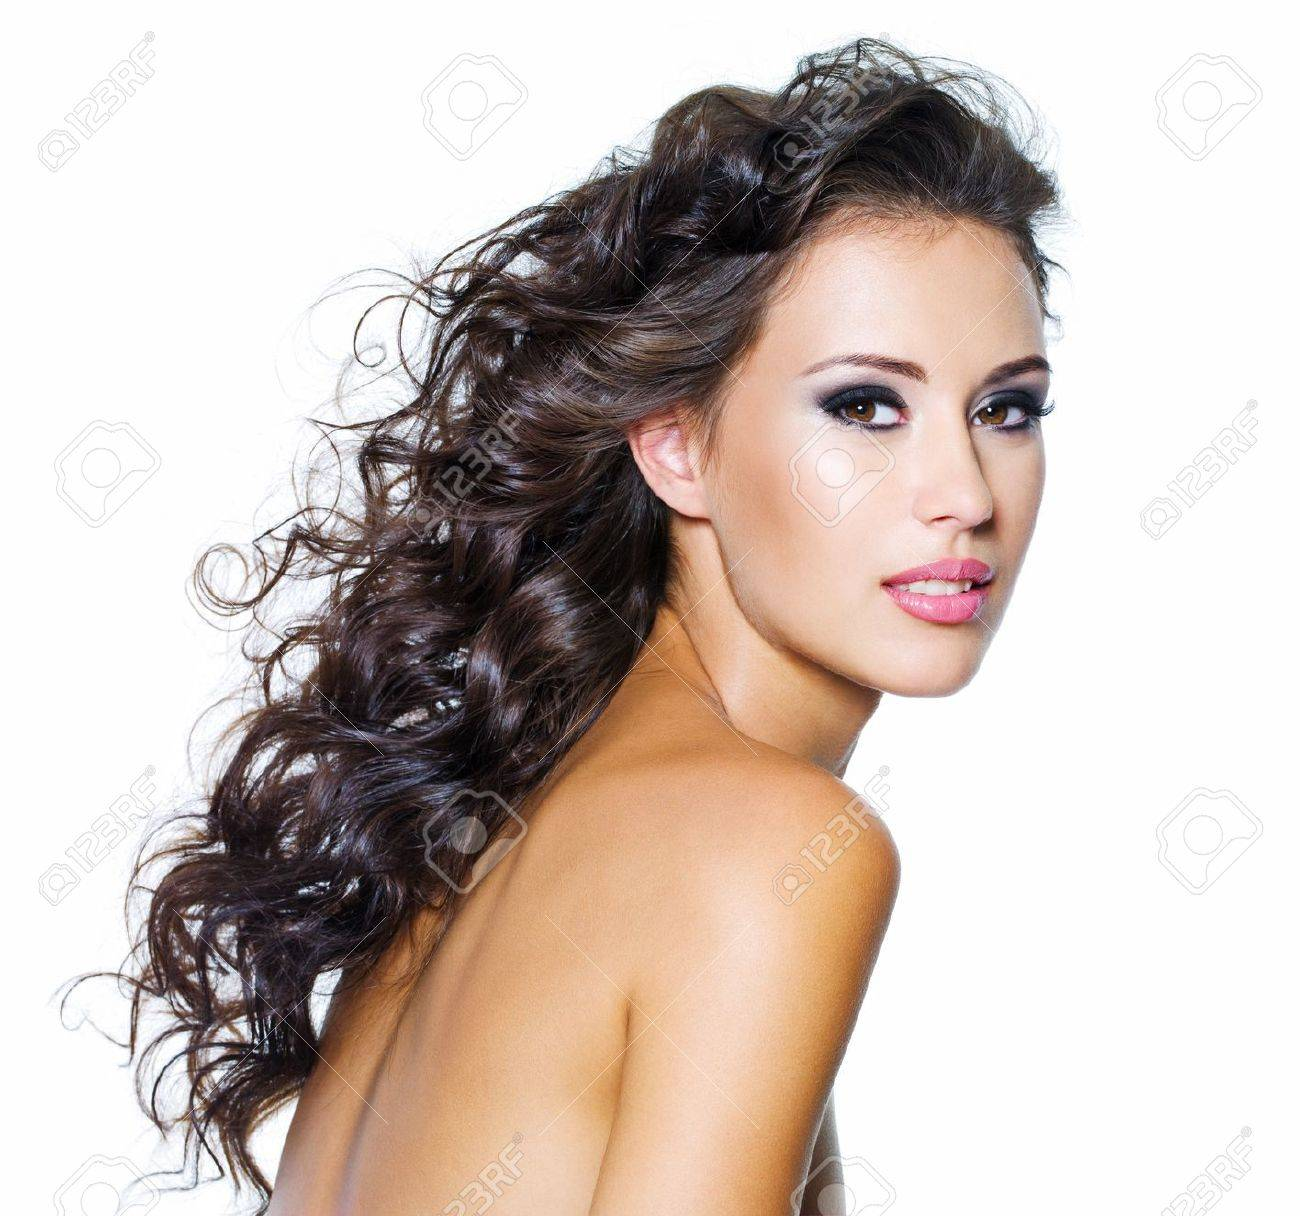 Beautiful face of young woman with clean skin. Girl with long curly hairs. Bright eye make-up Stock Photo - 7506945